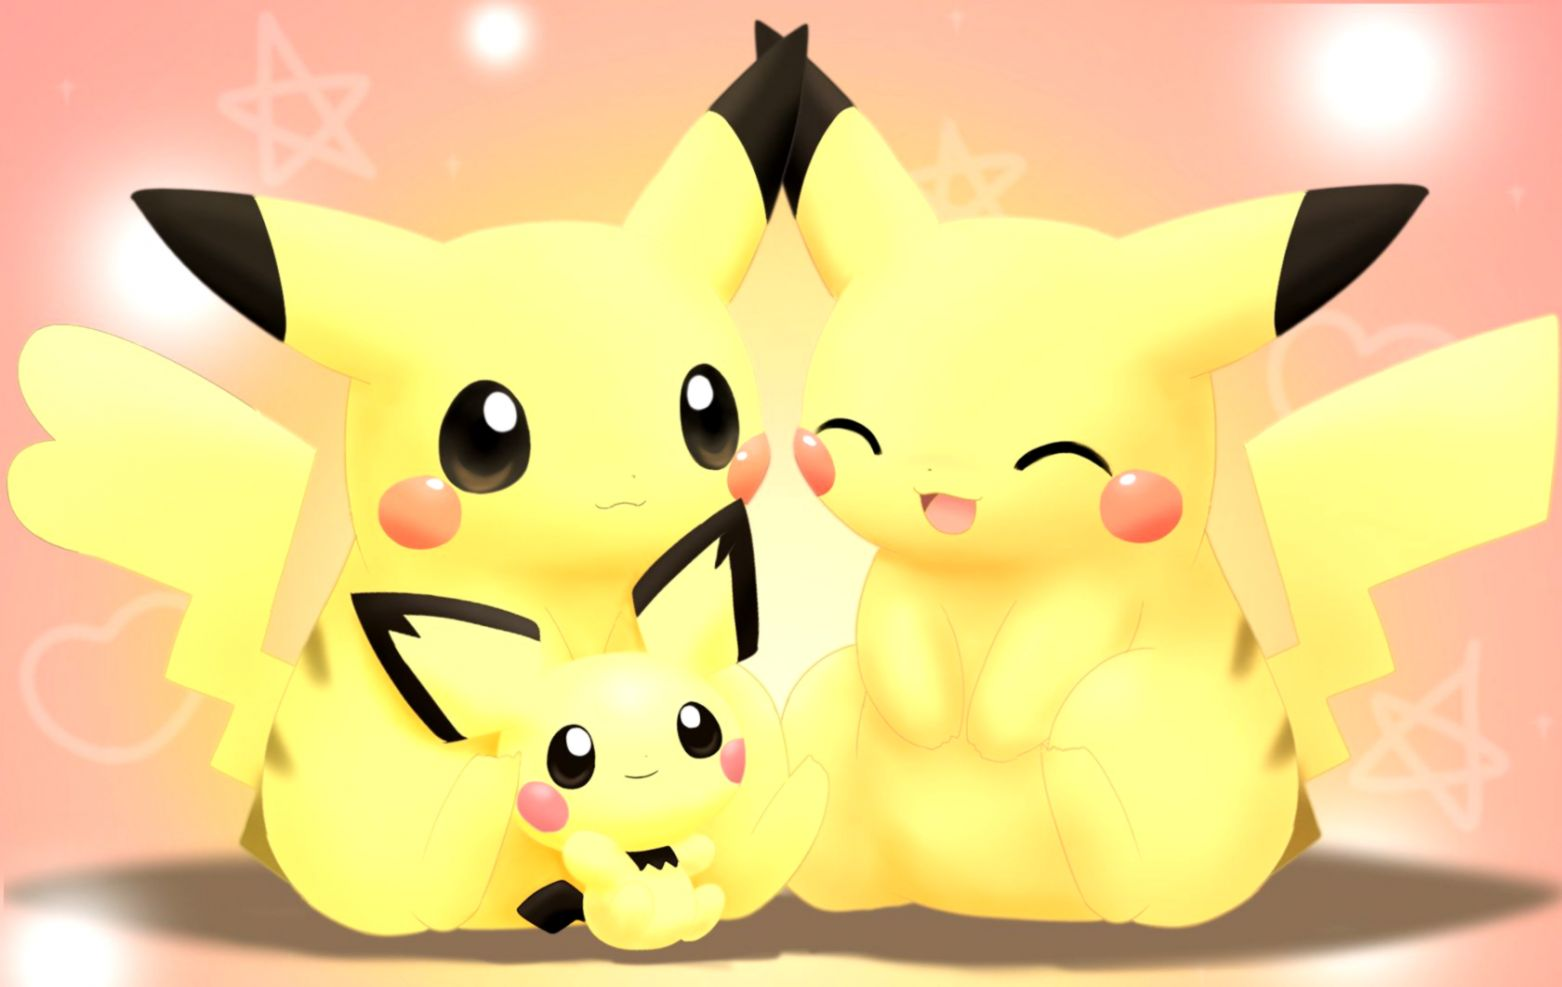 Pikachu Pokemon Cute Couples Hd Wallpaper All in One Wallpapers 1562x987